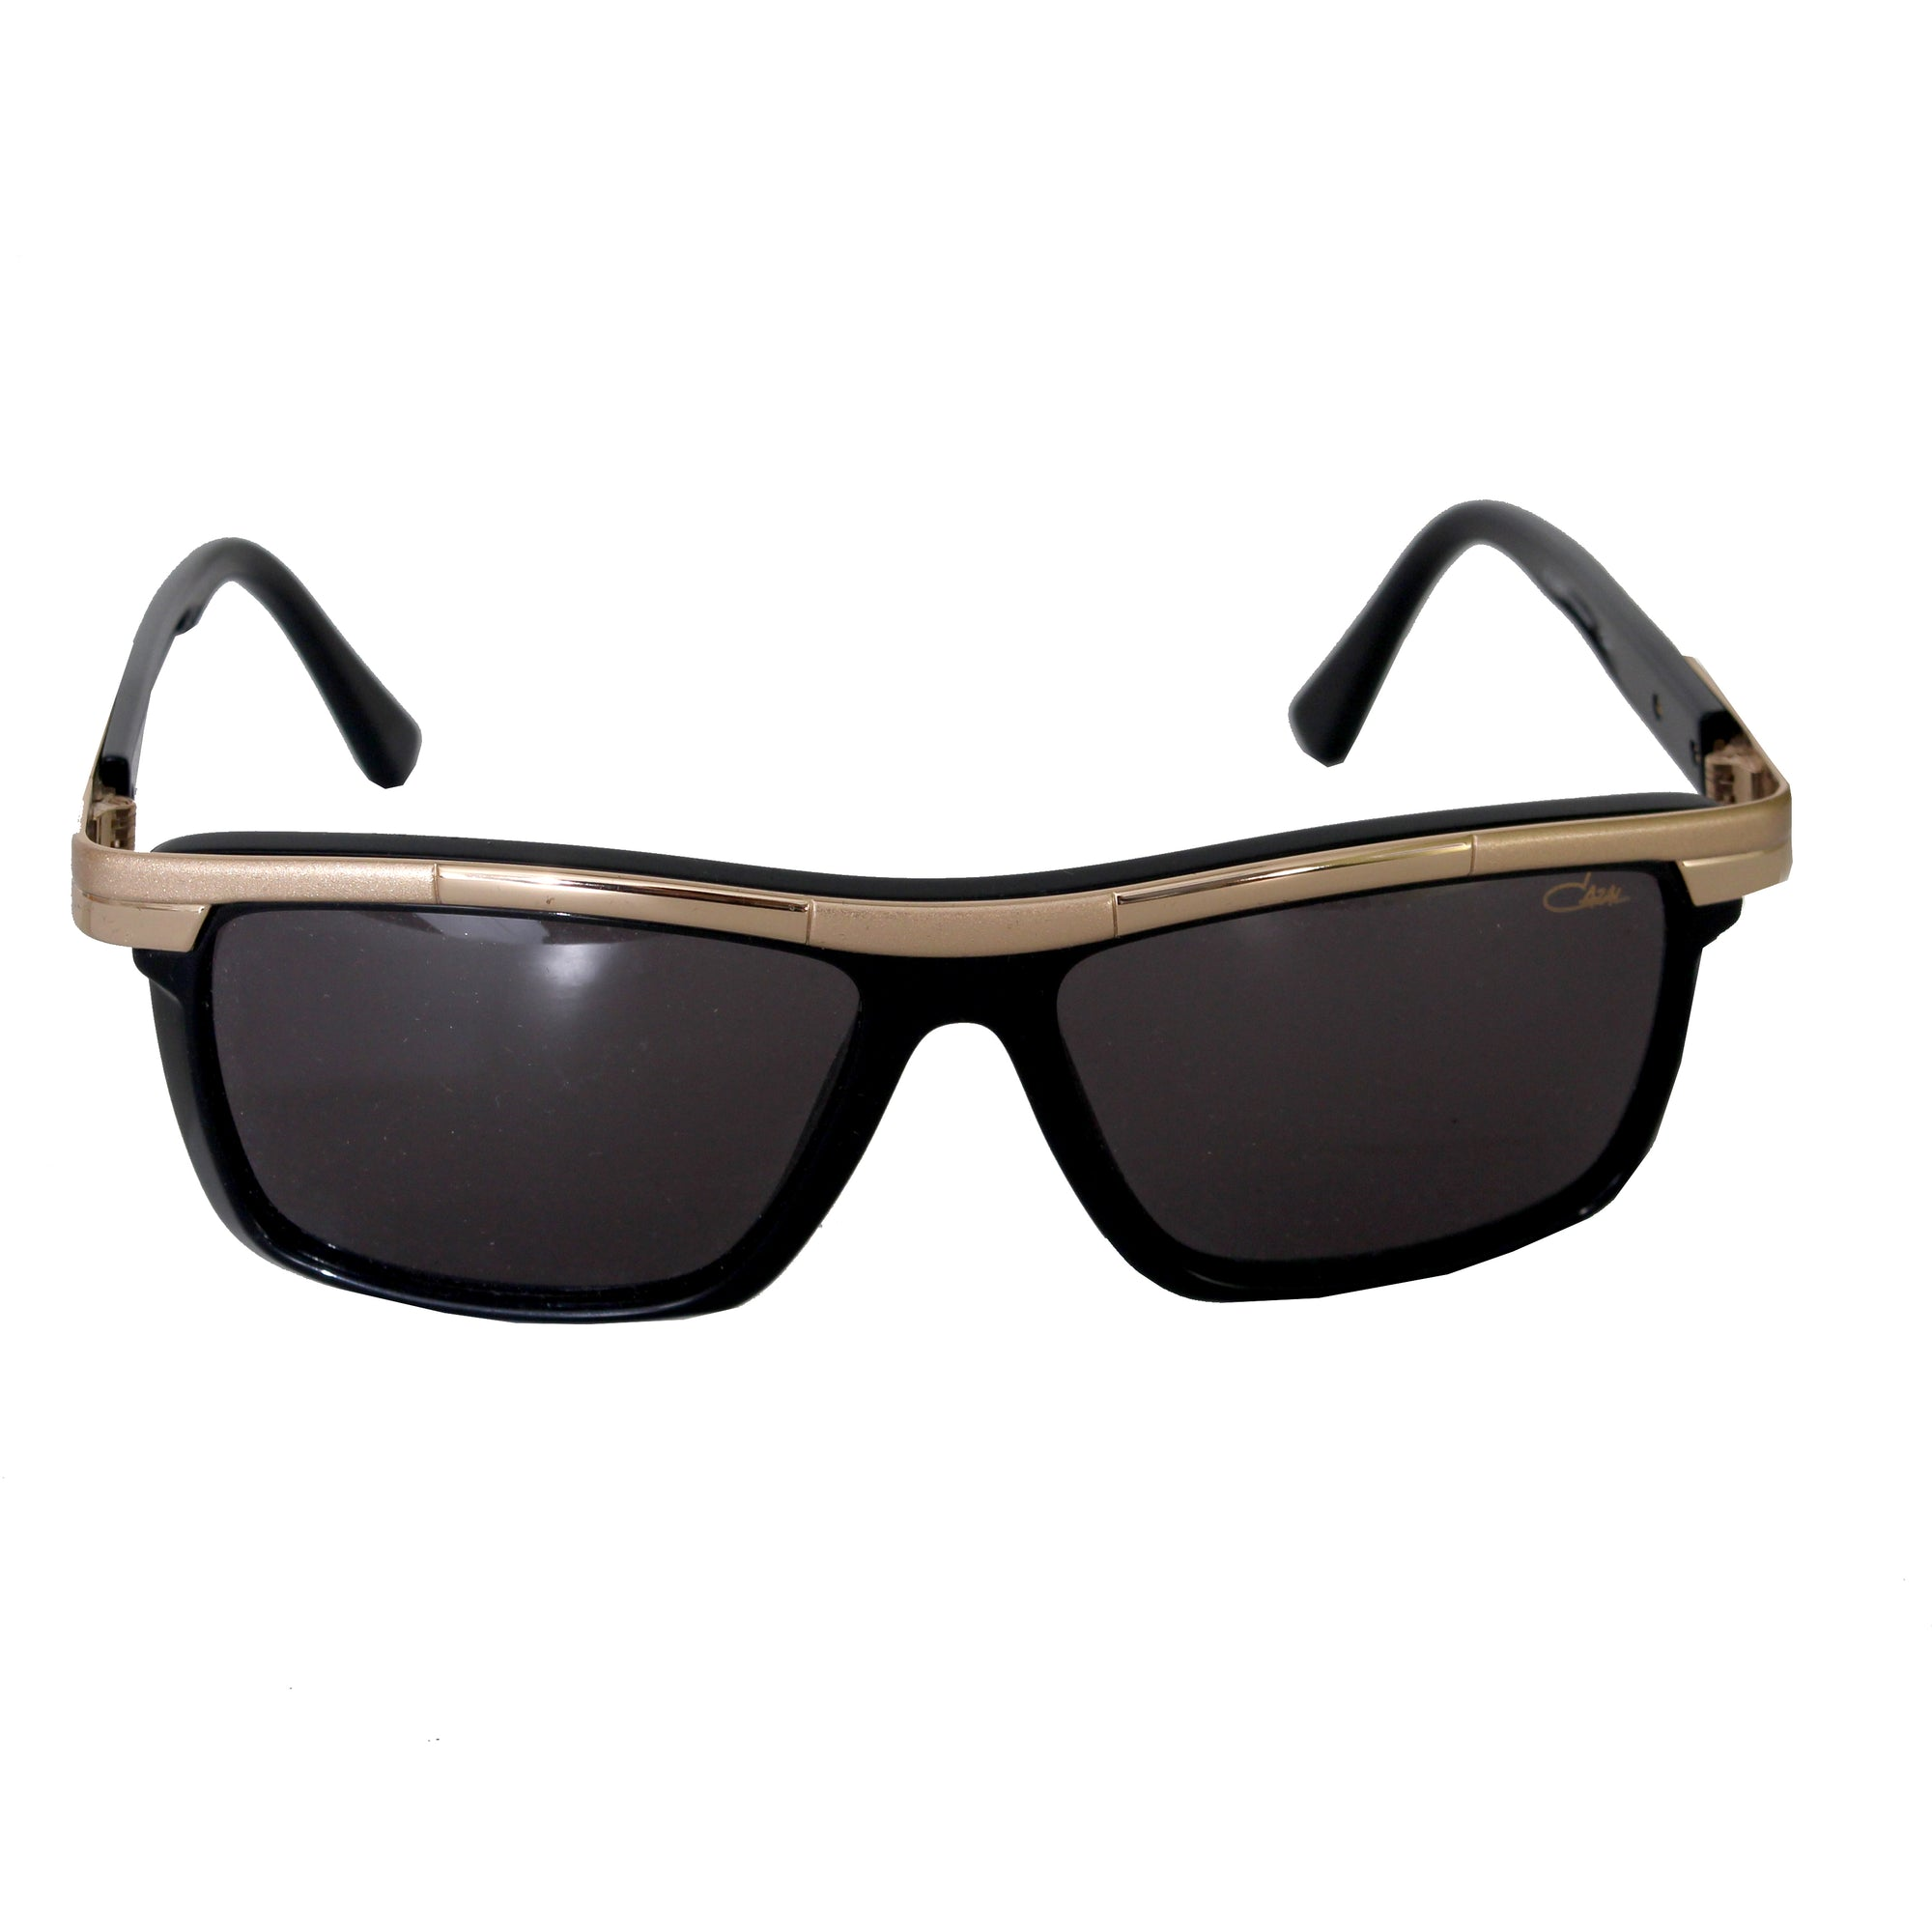 Cazal 8024 Sunglasses